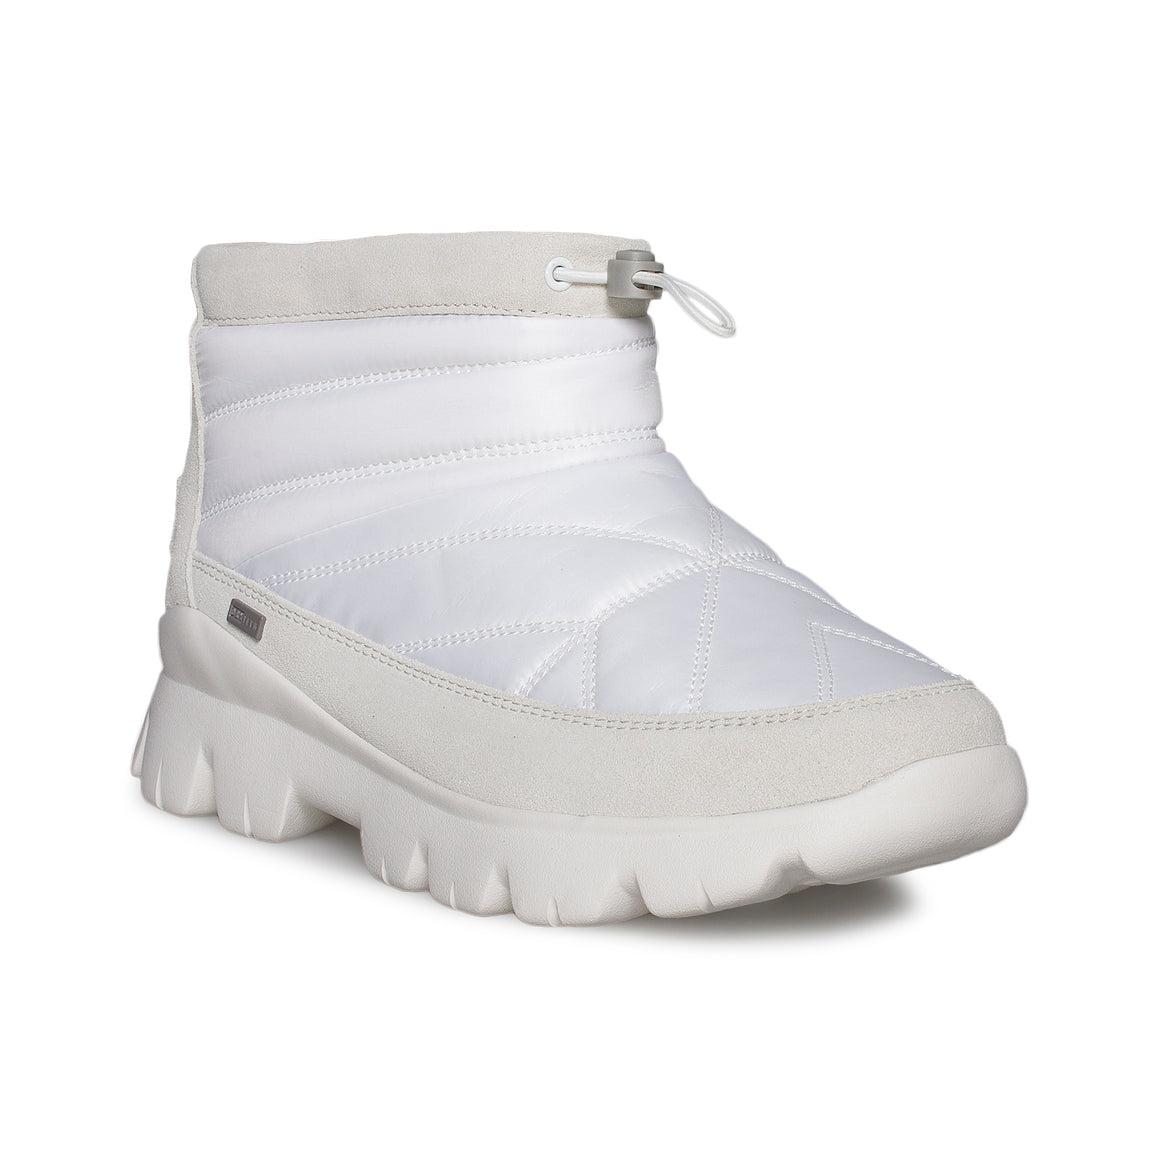 UGG Centara White Boot - Women's